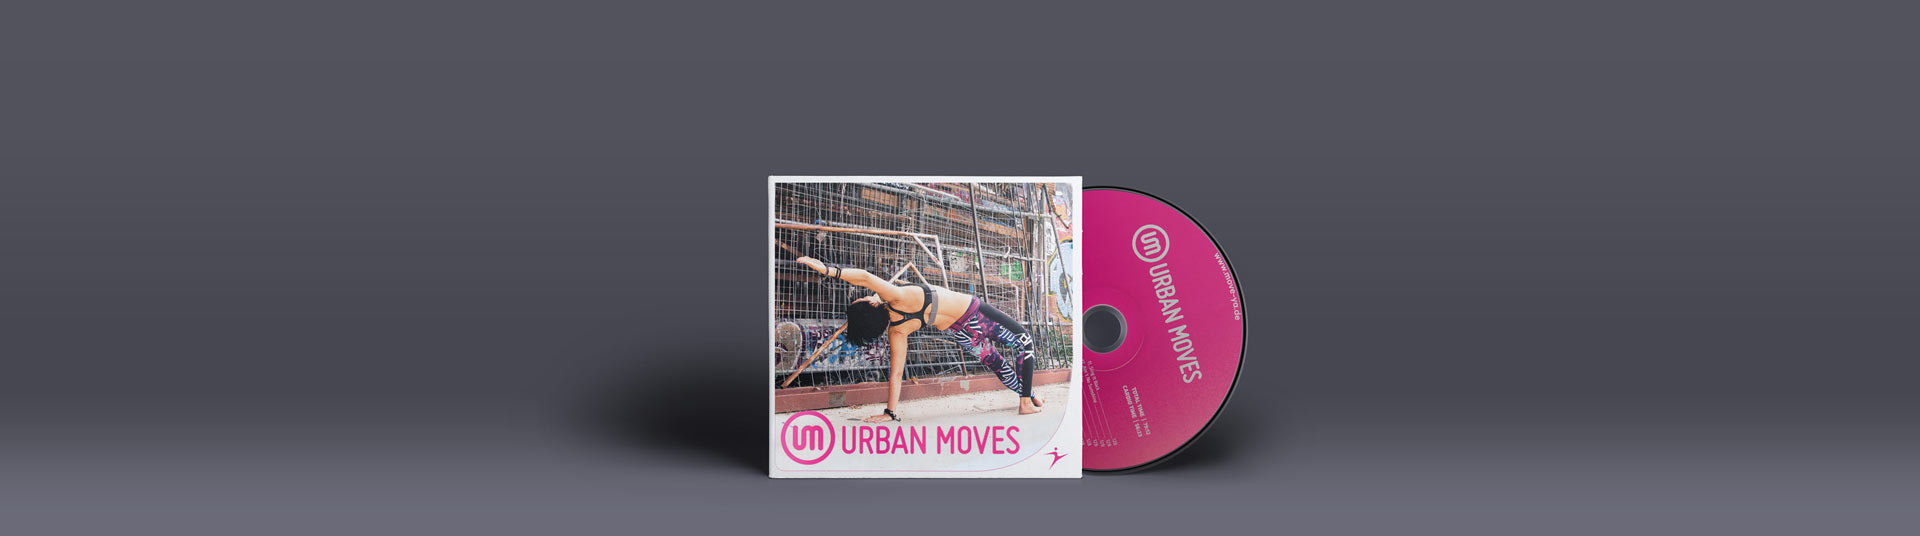 Urban moves CD